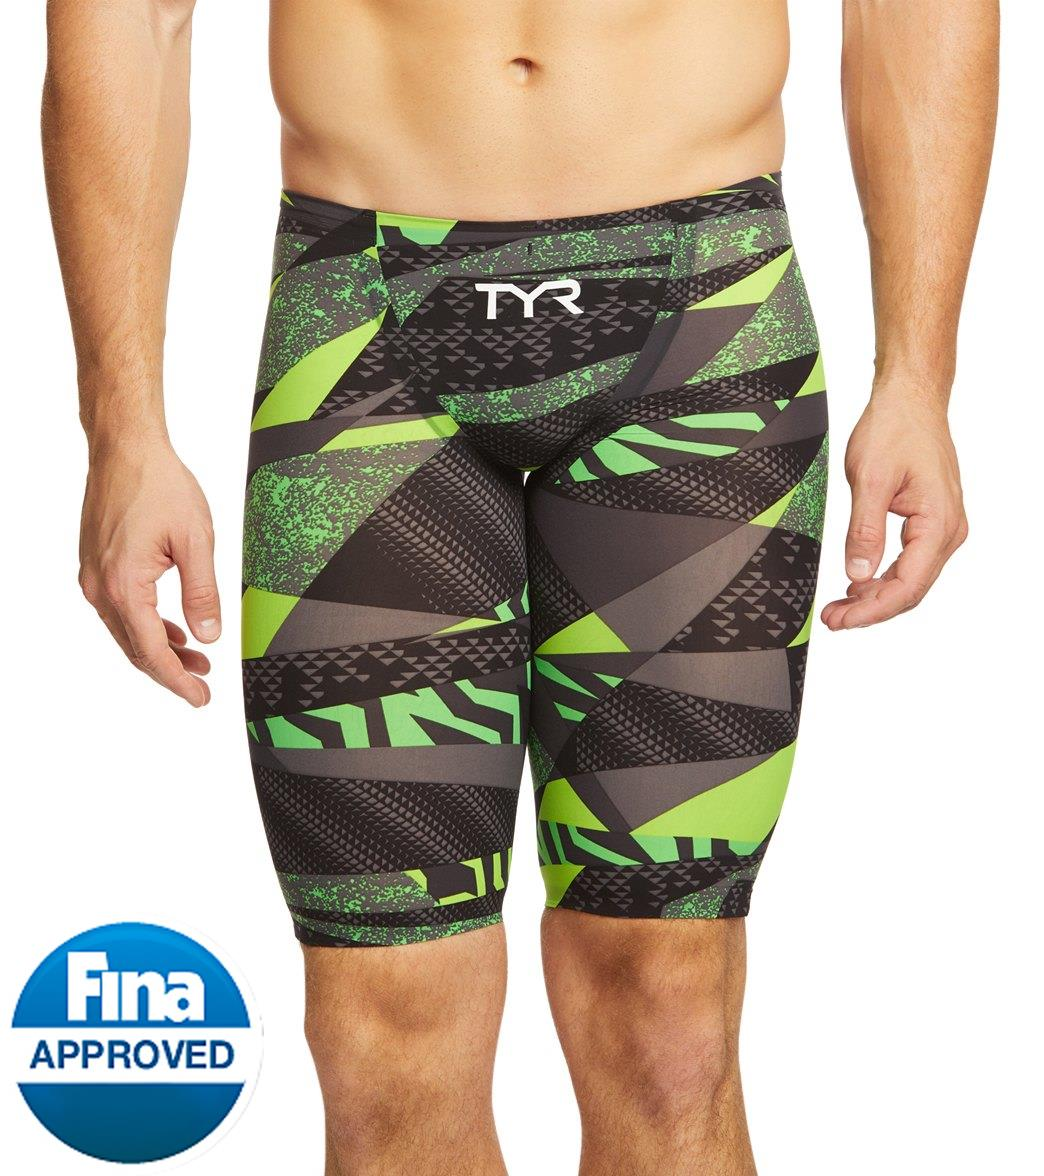 90bbd4467c3 TYR Avictor Prelude Male Short Jammer Tech Suit Swimsuit at SwimOutlet.com  - Free Shipping